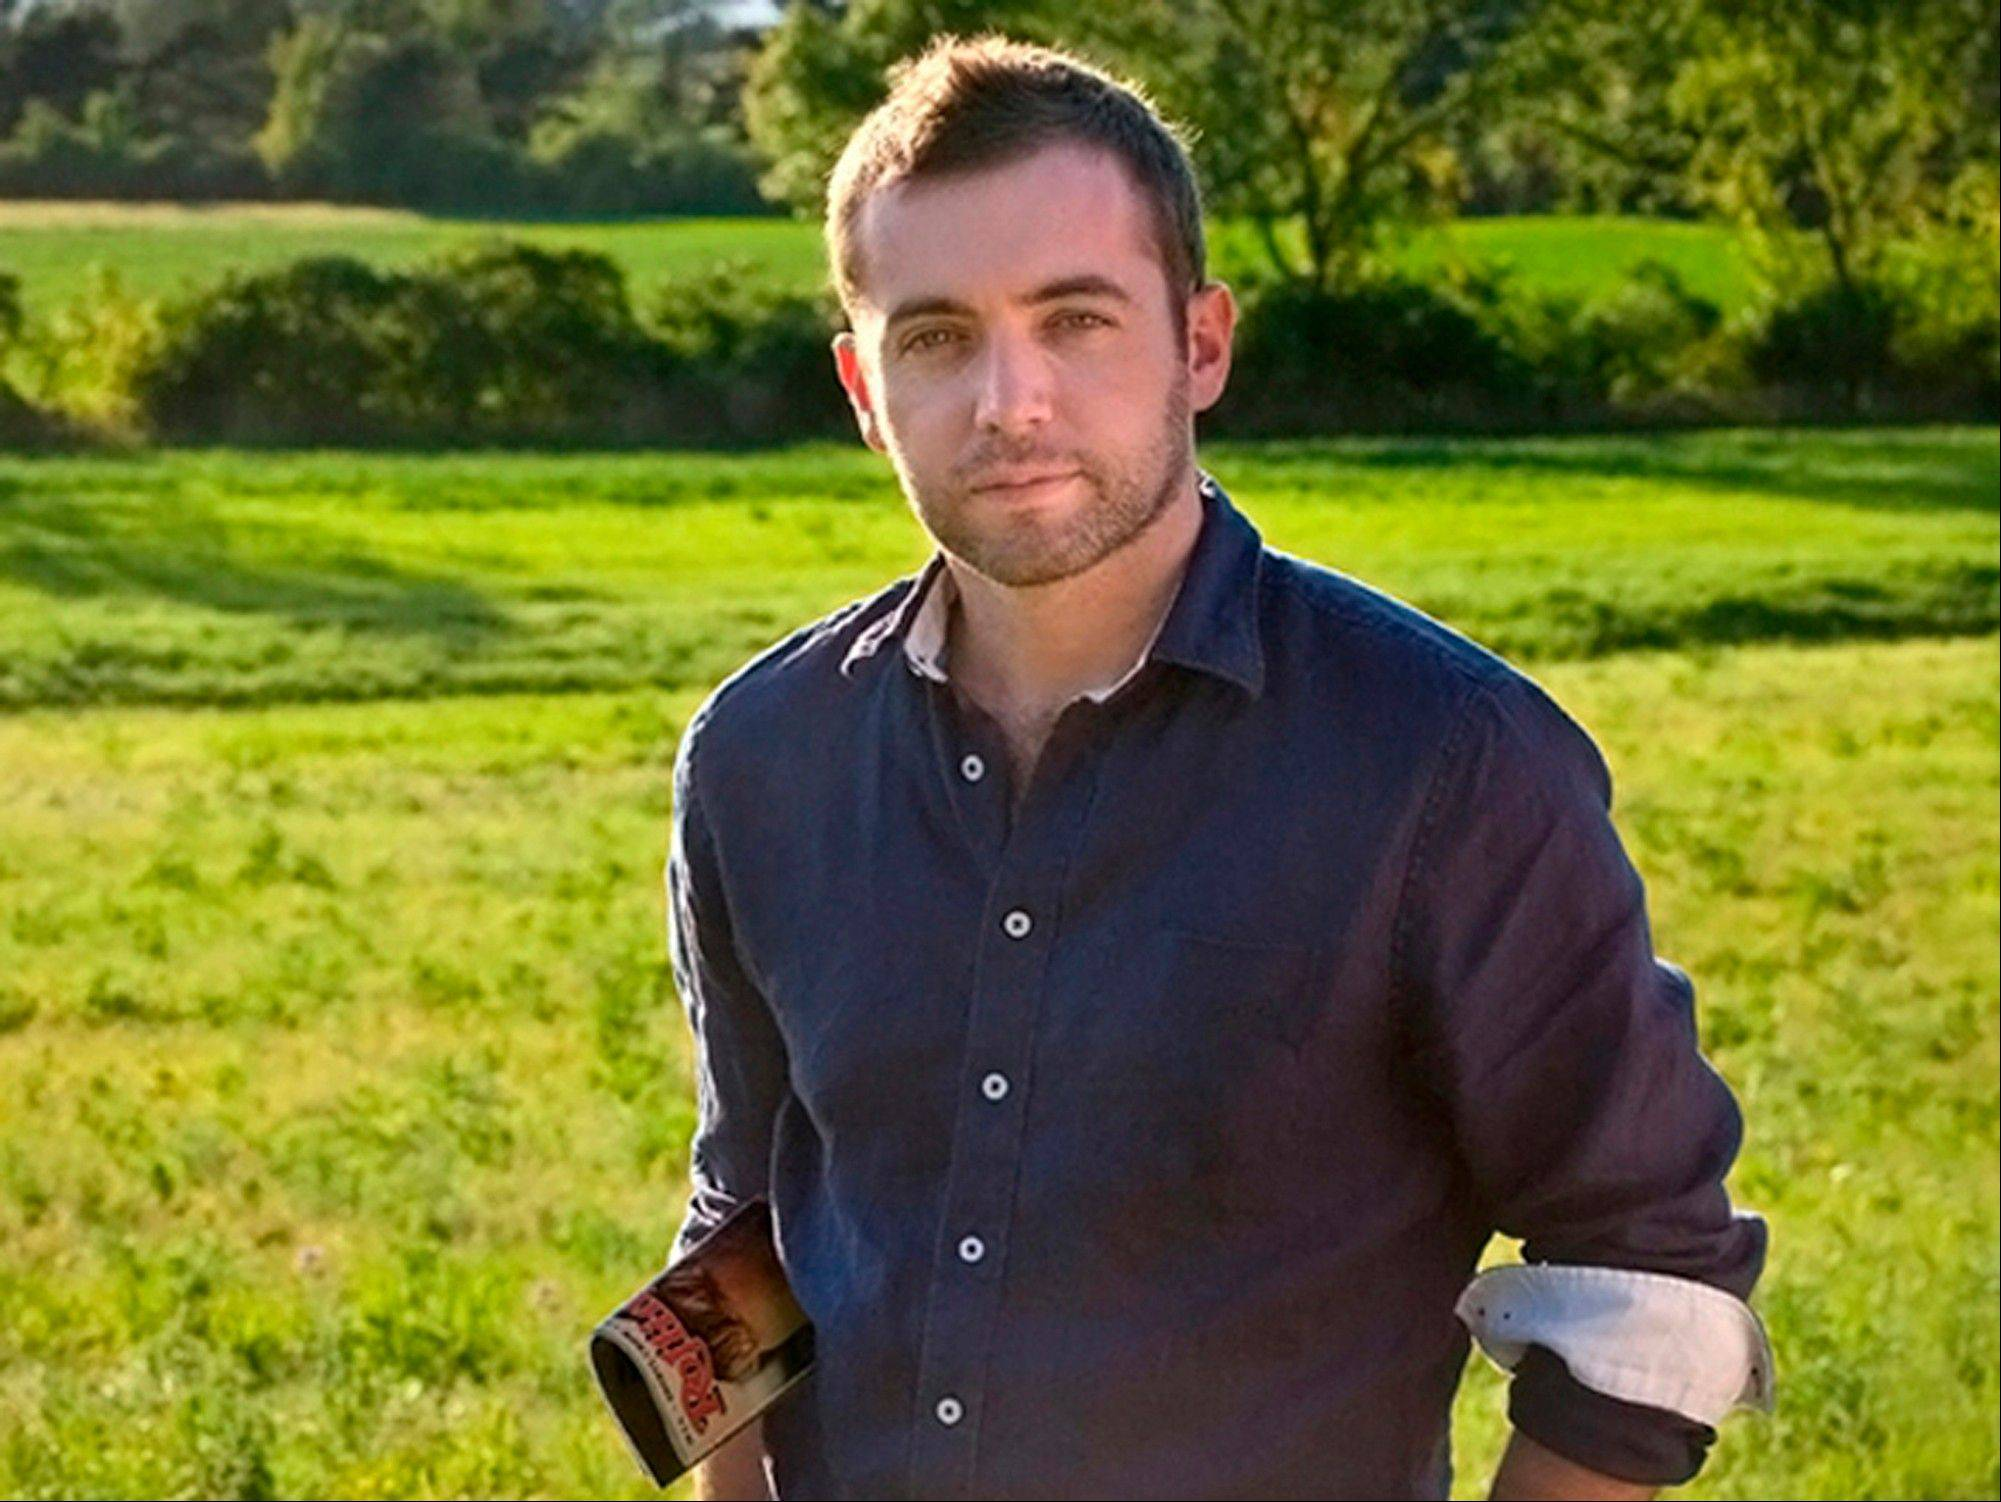 "FILE - This undated file photo provided by Blue Rider Press/Penguin shows award-winning journalist and war correspondent Michael Hastings. A Los Angeles County coroner�s autopsy report released Tuesday, Aug. 20, 2013, says the 33-year-old Hastings died instantly of ""massive blunt force trauma."" The autopsy found traces of amphetamine and marijuana in his body but concluded that it was an unlikely contributor to his death in a fiery single-car crash, June 18 in Los Angeles."